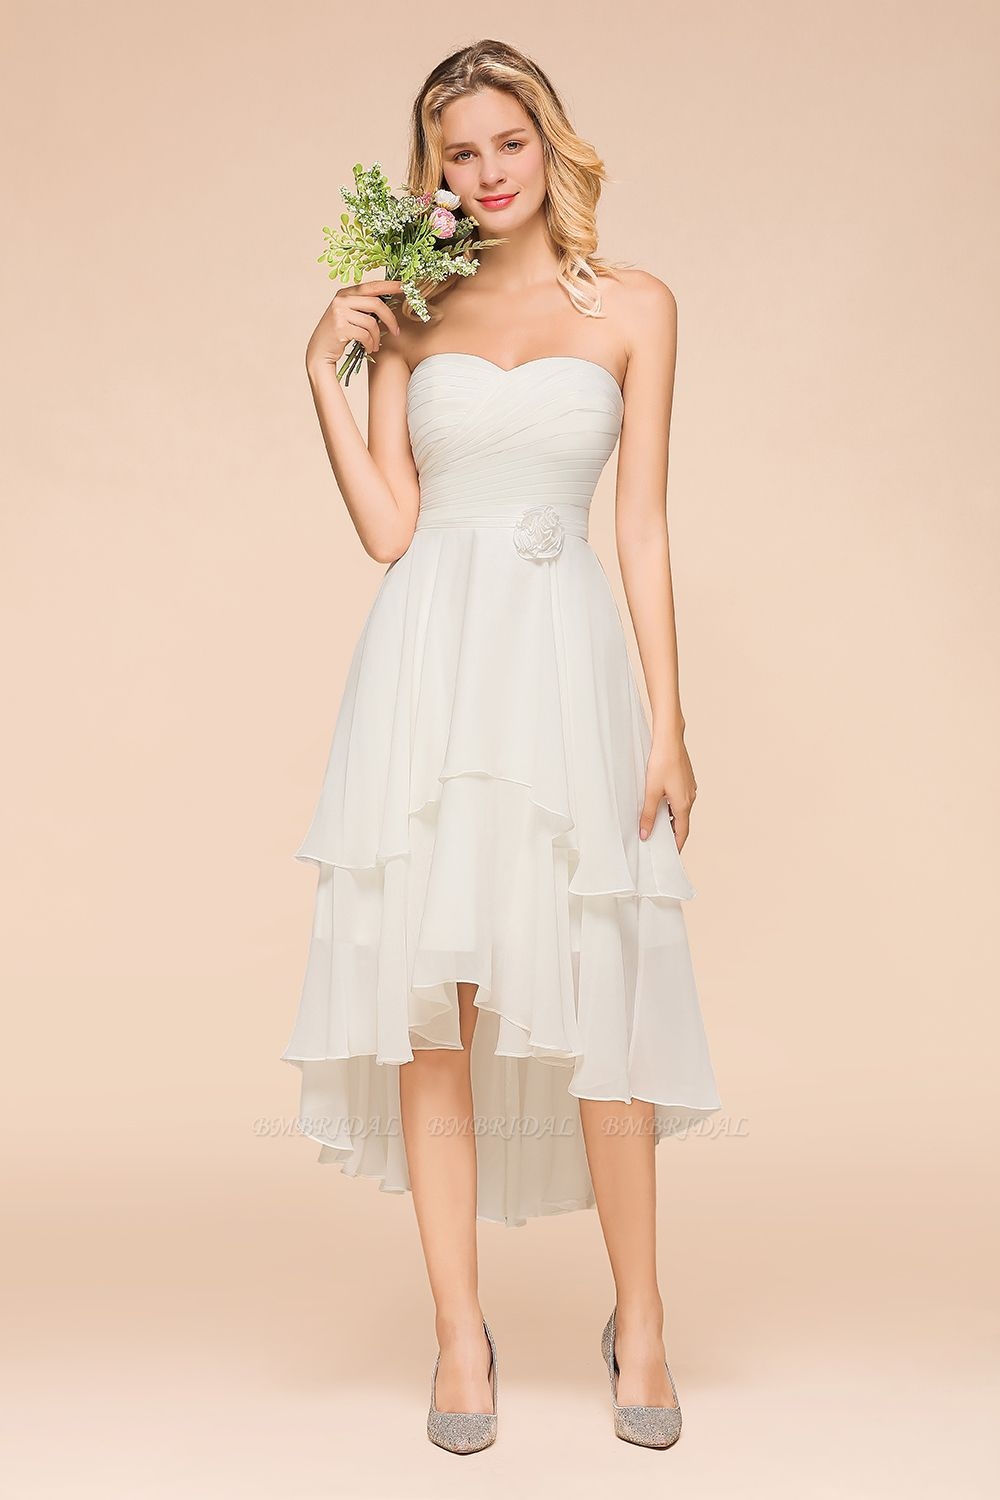 Affordable Hi-Lo Layer Ruffle Ivory Short Bridesmaid Dress with Flower